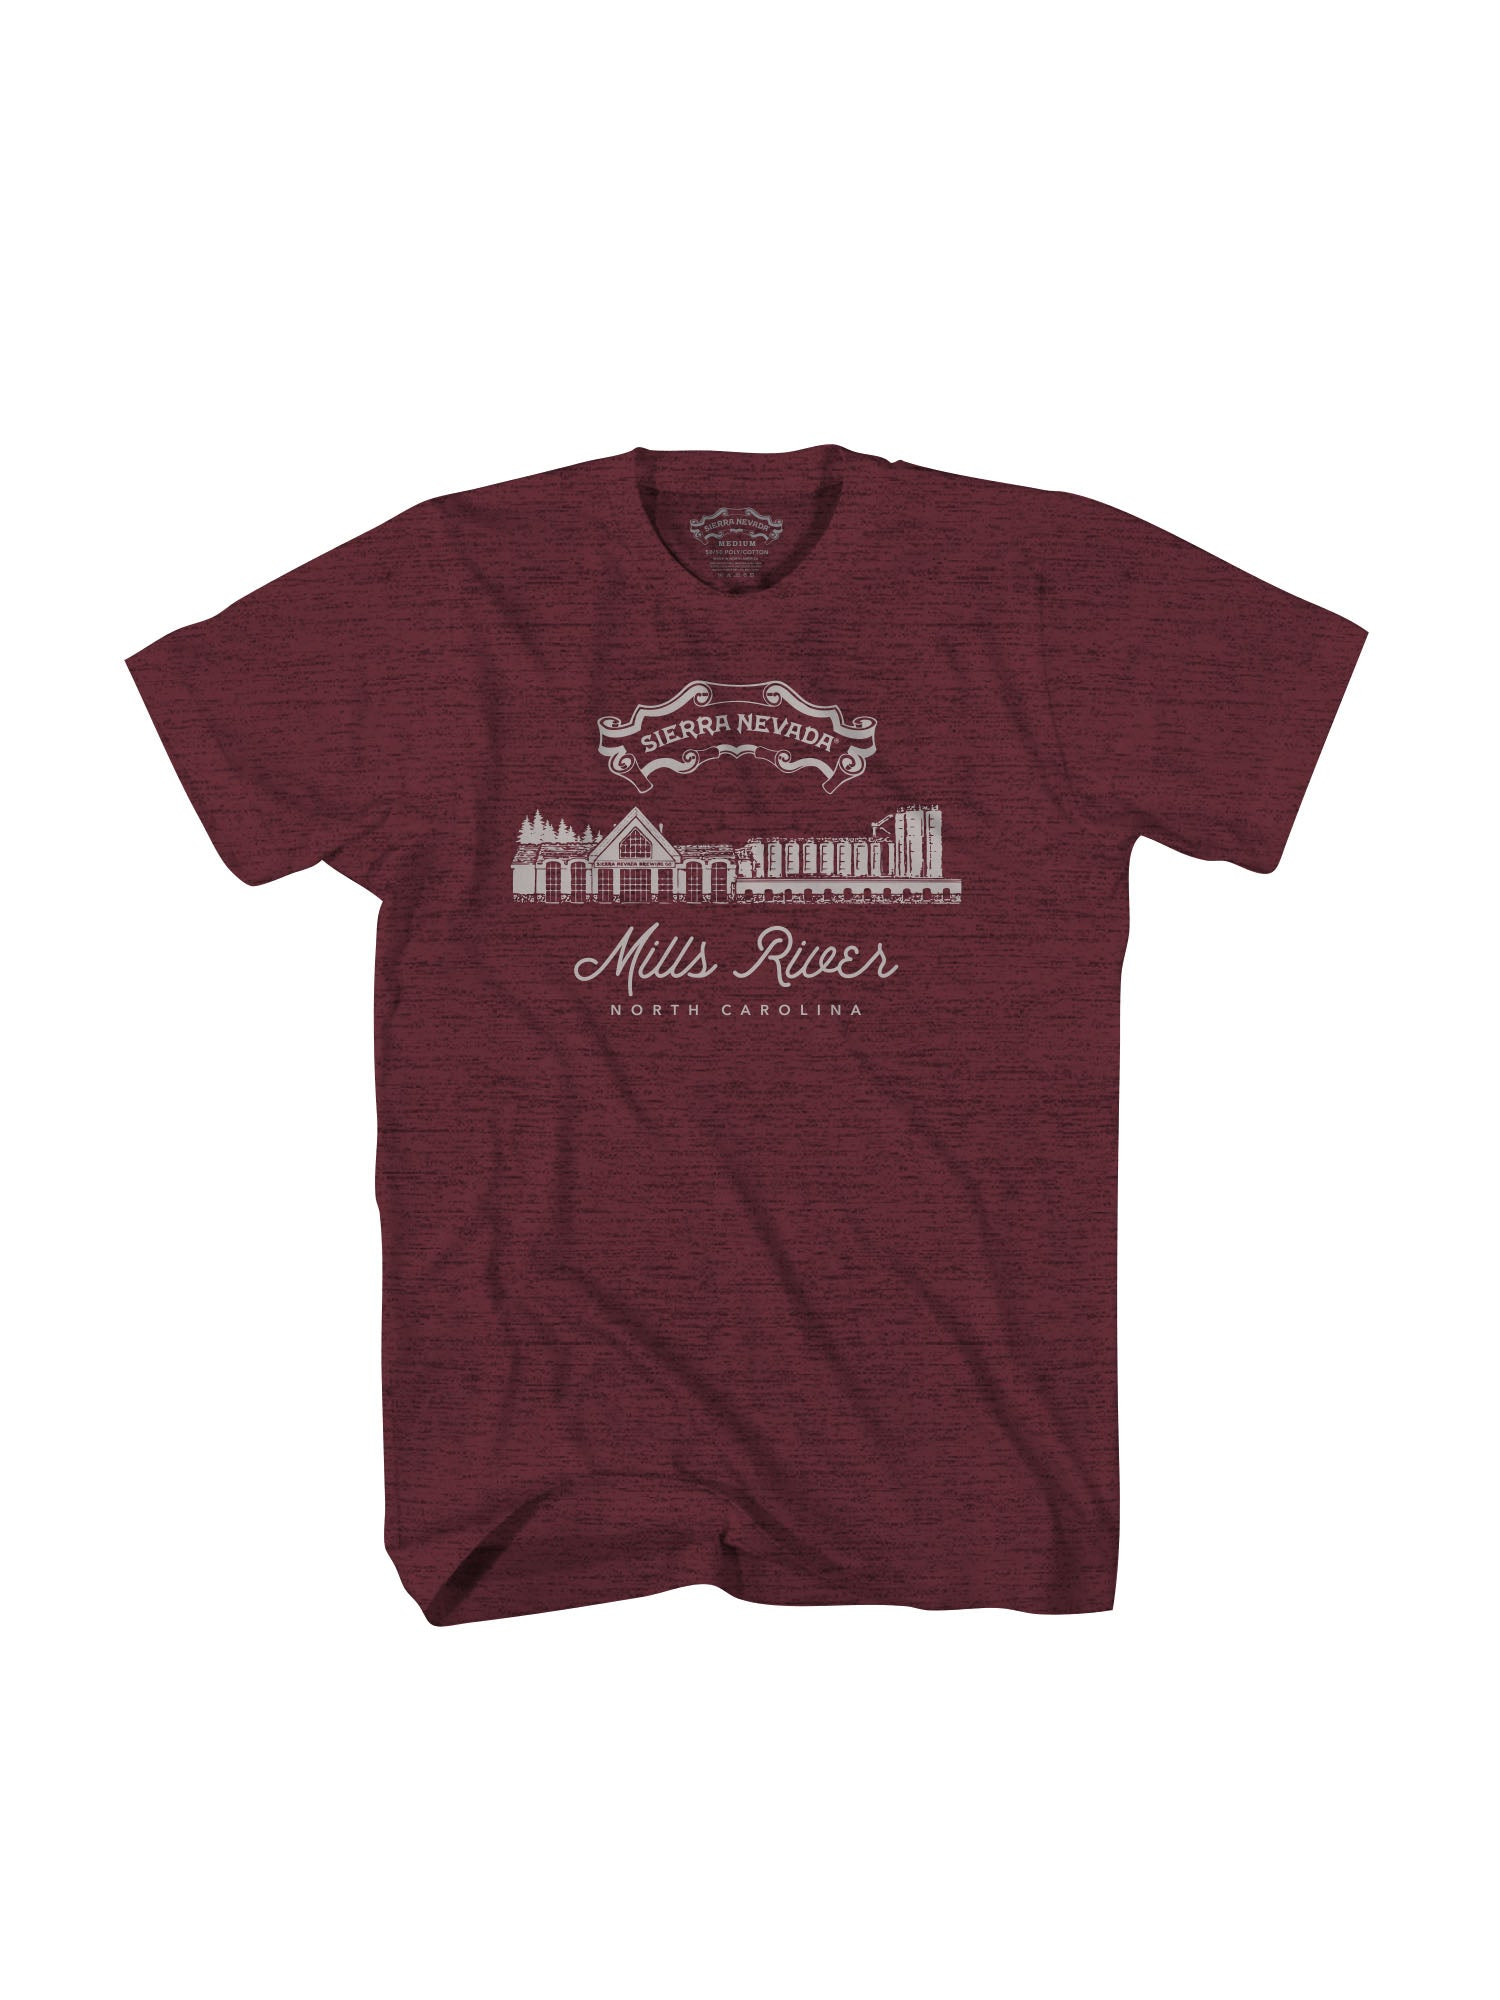 MILLS S/S TSHIRT- MAROON - Anderson Bros Design and Supply